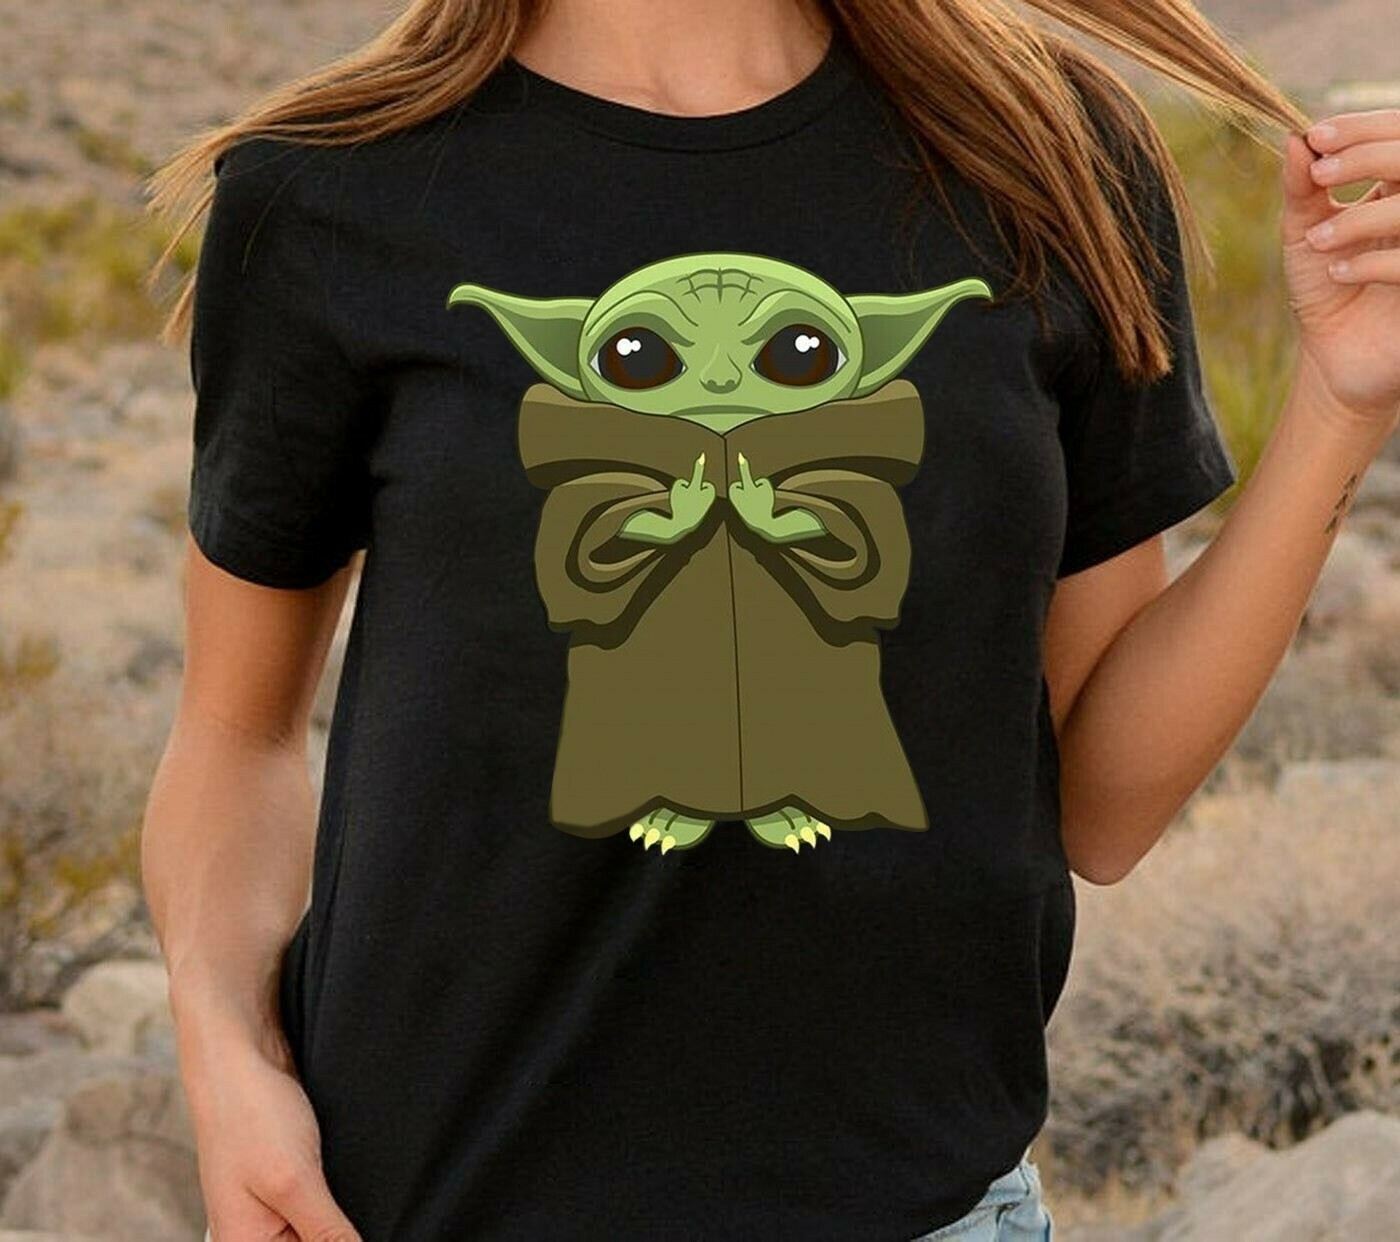 Star Wars baby Yoda give a fuck pocket,Baby Yoda Middle Finger Yourself Go Fuck,Funny The Rise of Skywalker Movie Memes Fan  T-Shirt Sweatshirt Hoodie Long Sleeve Tee Kids Youth Gifts Jolly Family